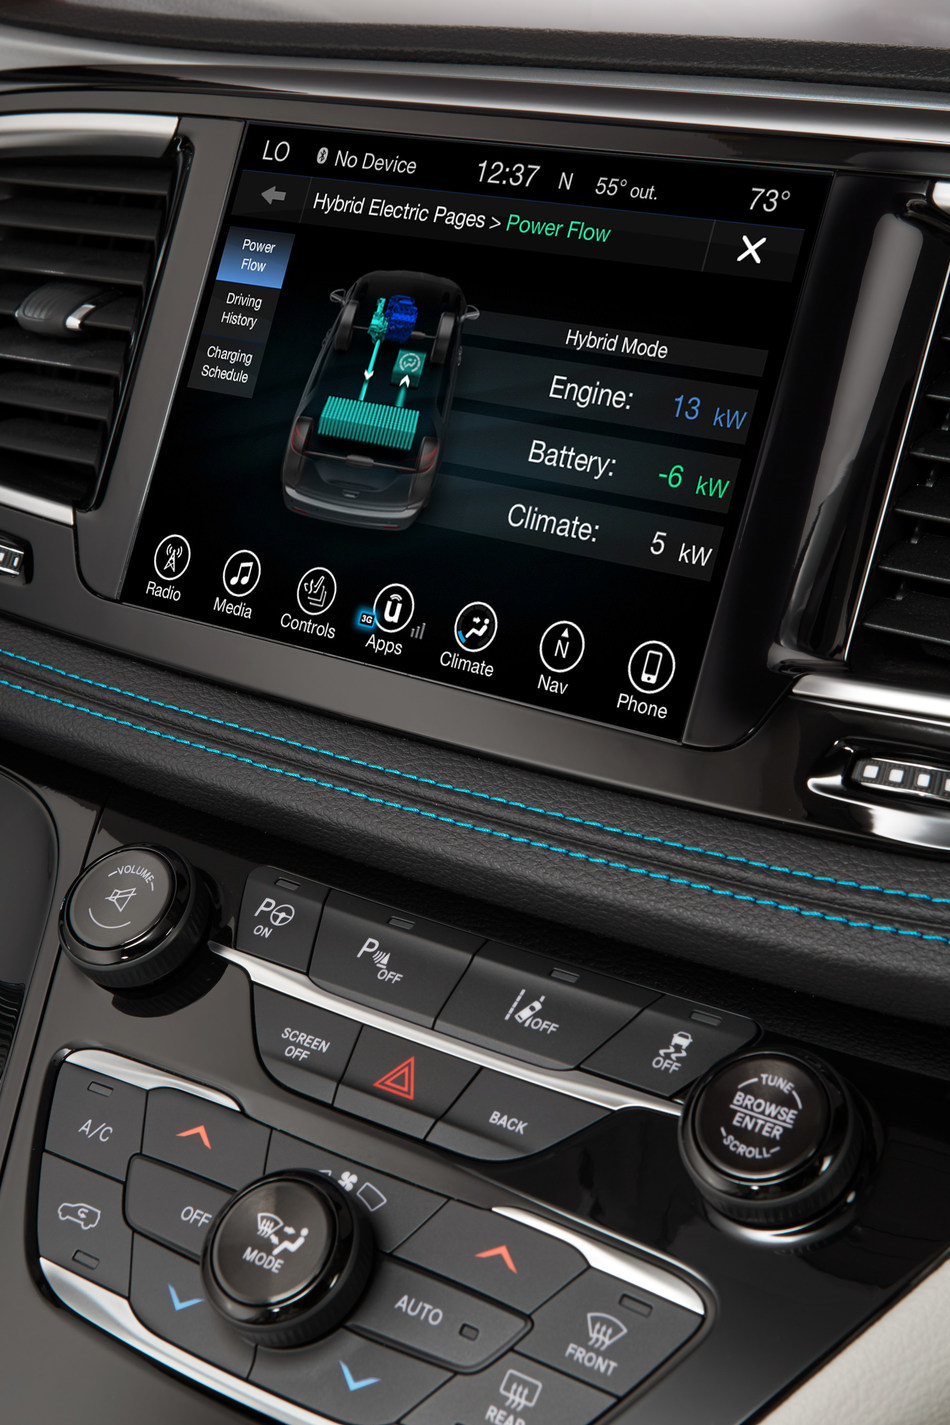 All-new 2017 Chrysler Pacifica Hybrid Offers Technology